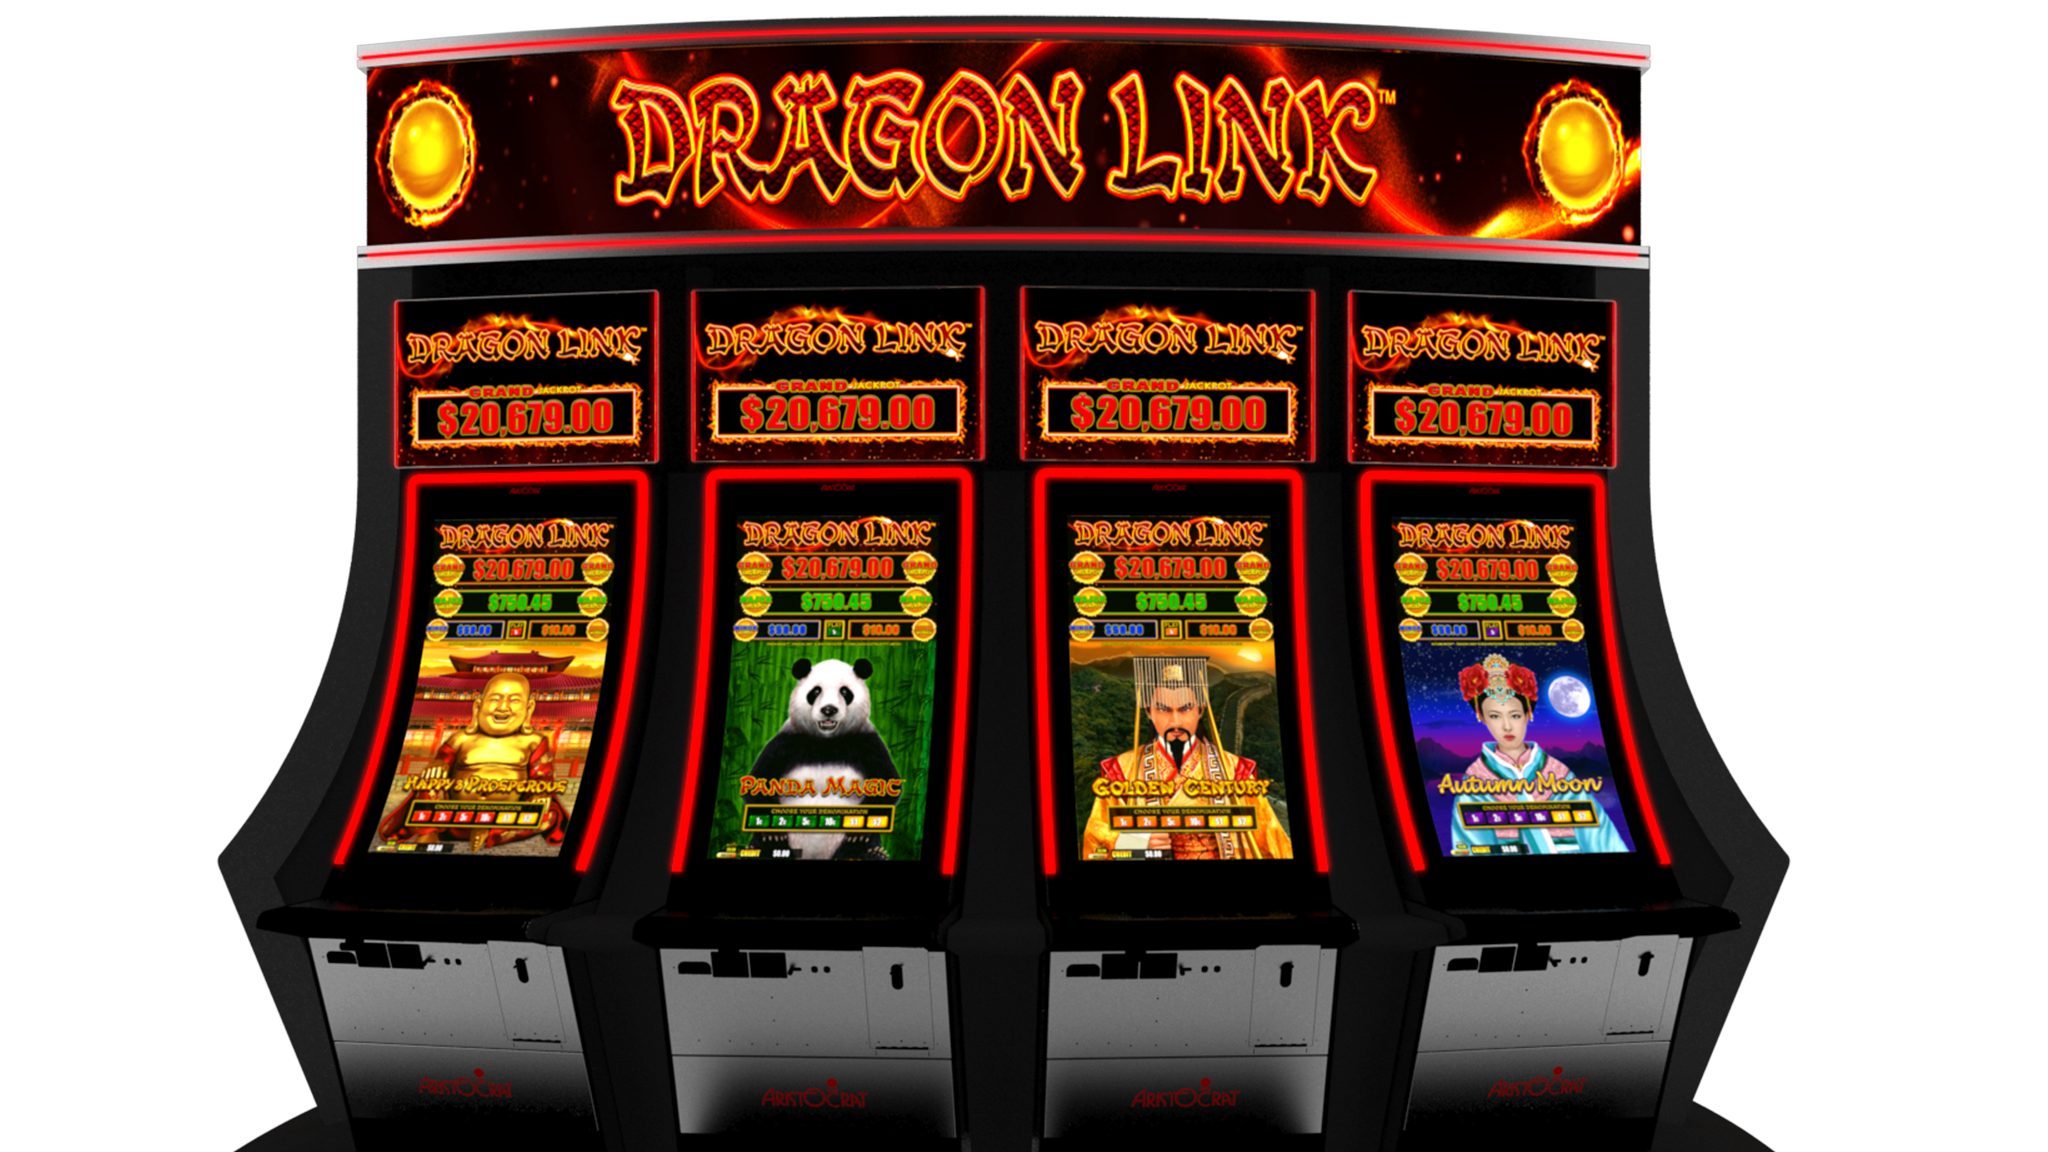 Real casino games win real money